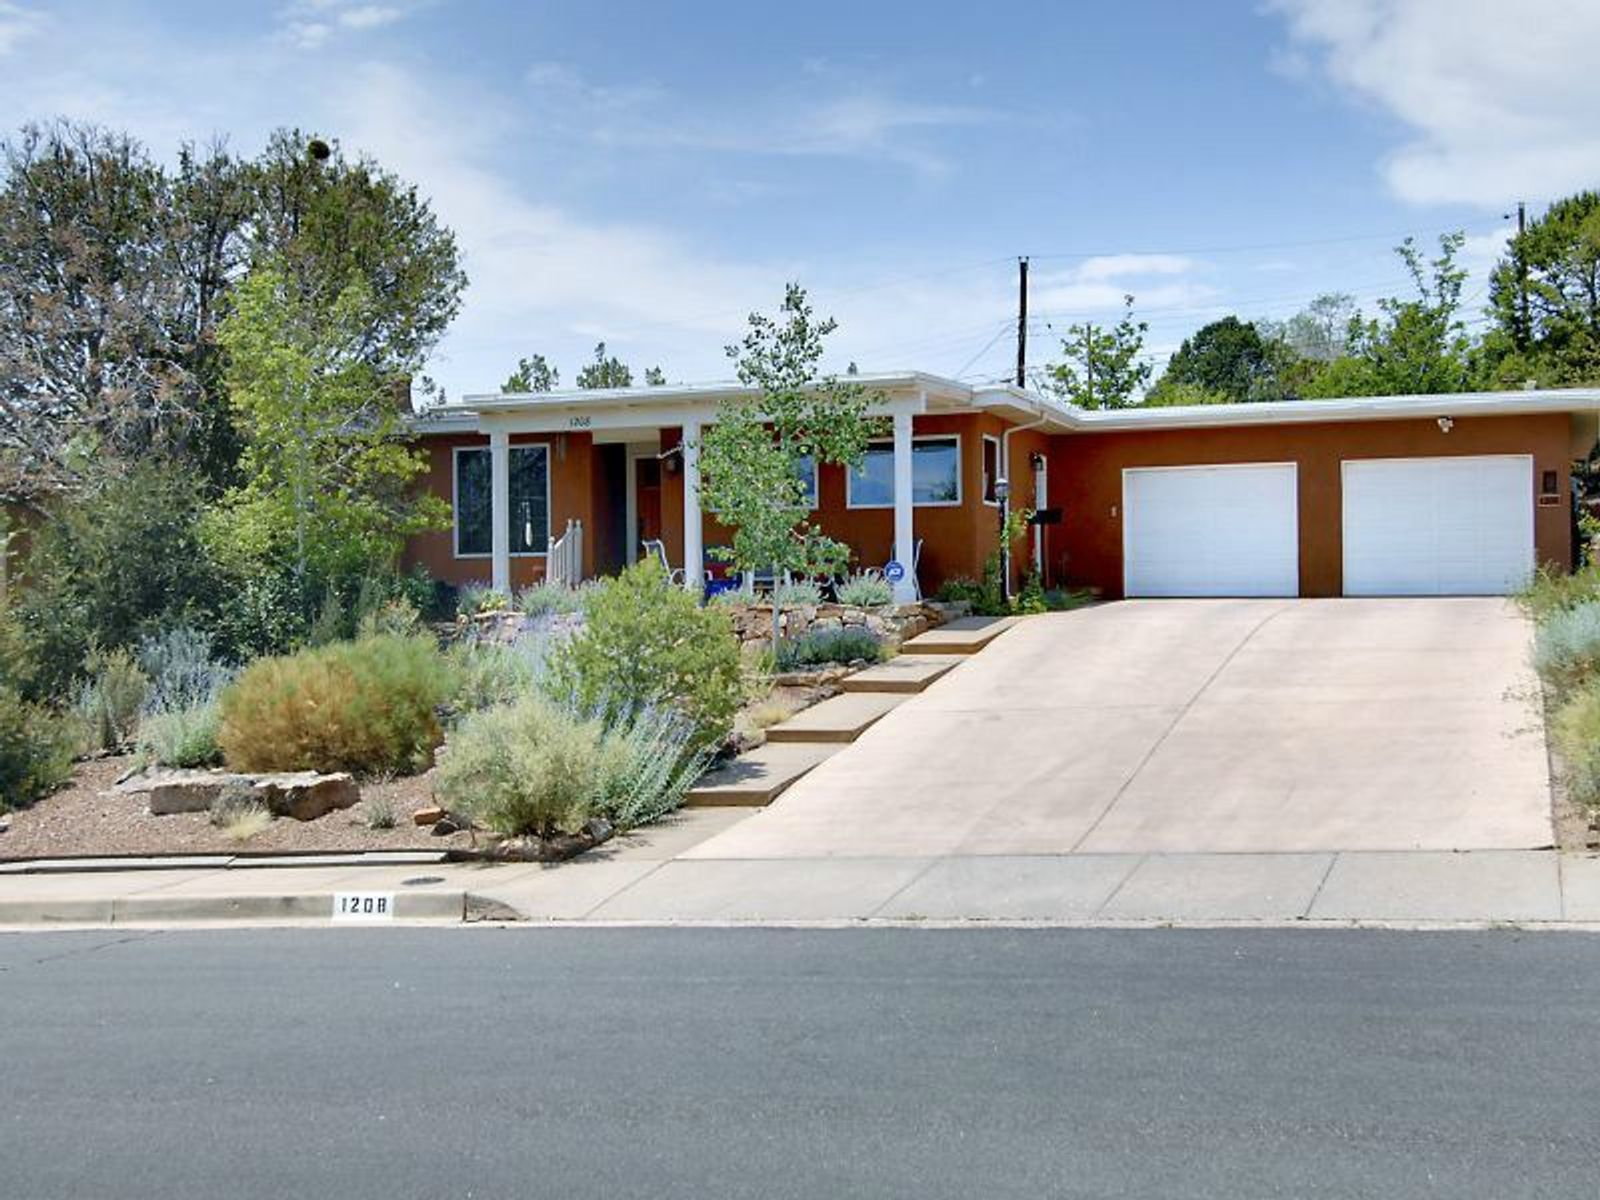 1208 Placita Loma, Santa Fe NM Single Family Home - Santa Fe Real Estate